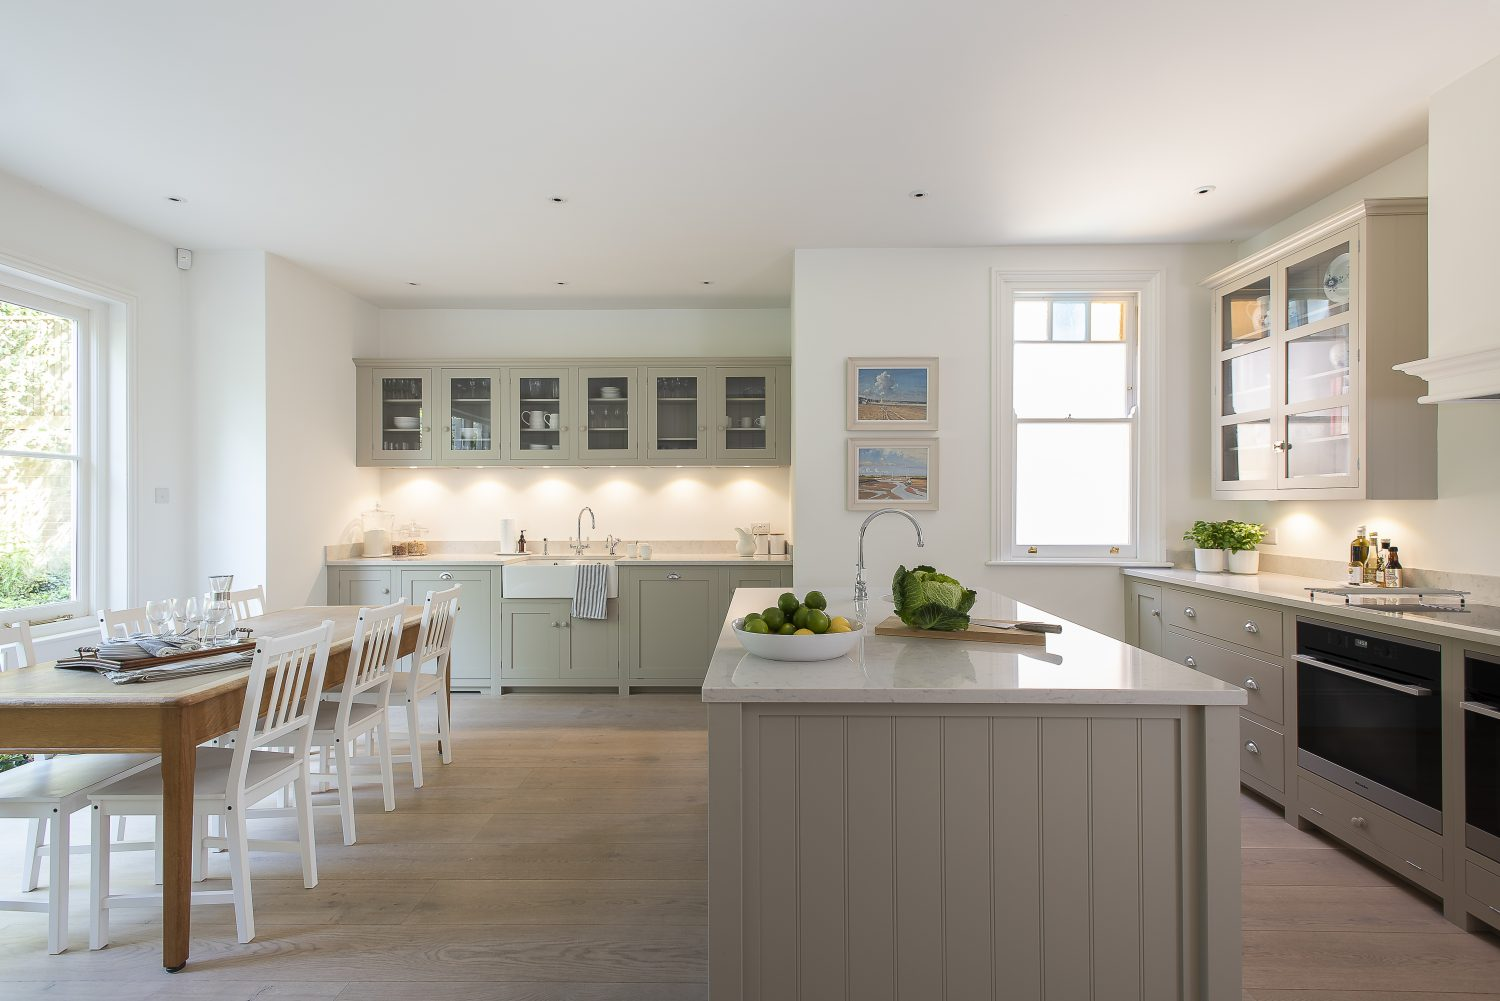 The lofty kitchen is home to a large central island and generous dining space